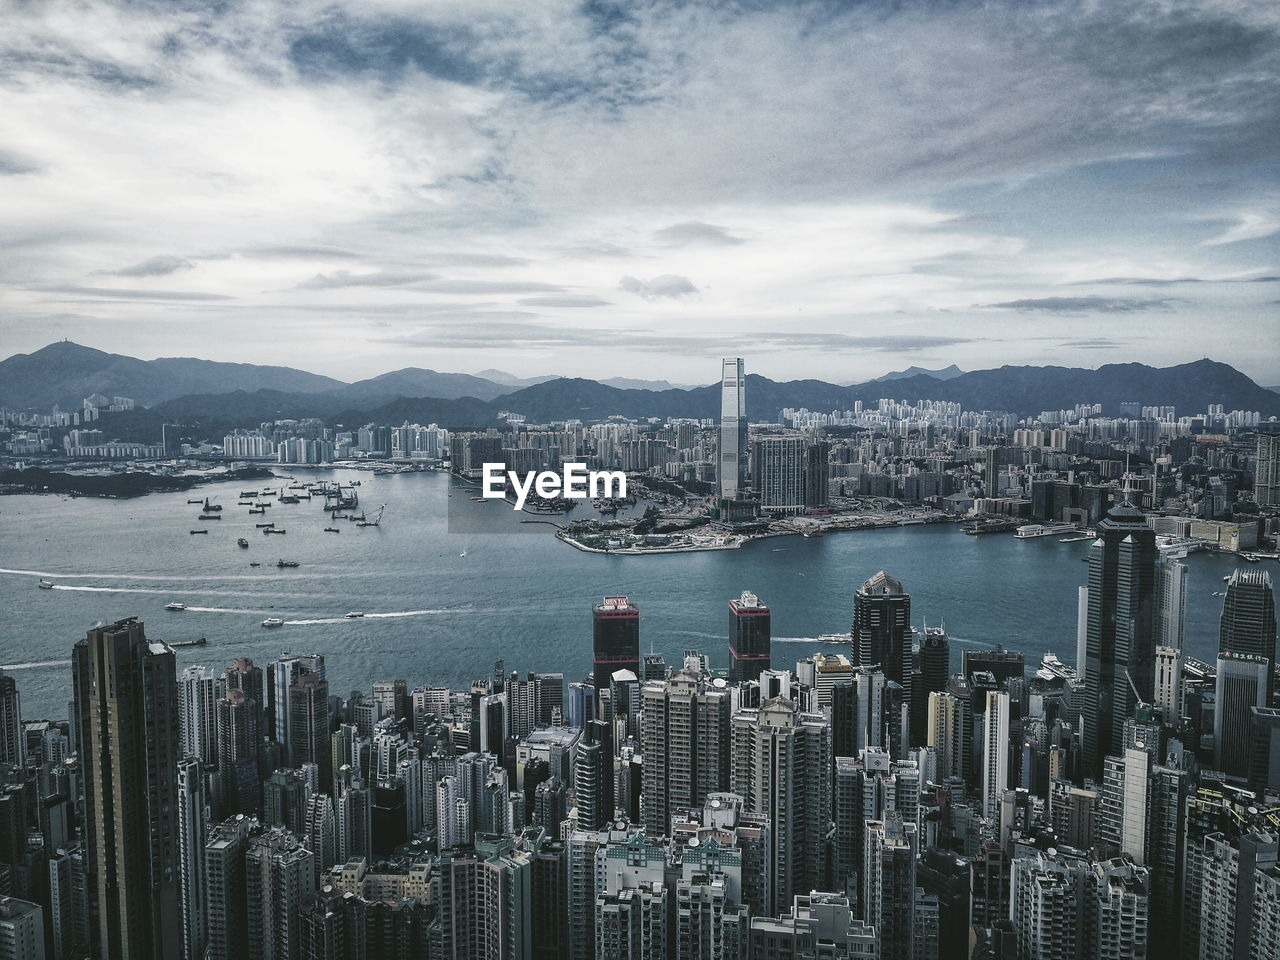 Aerial View Of Cityscape By River Against Cloudy Sky